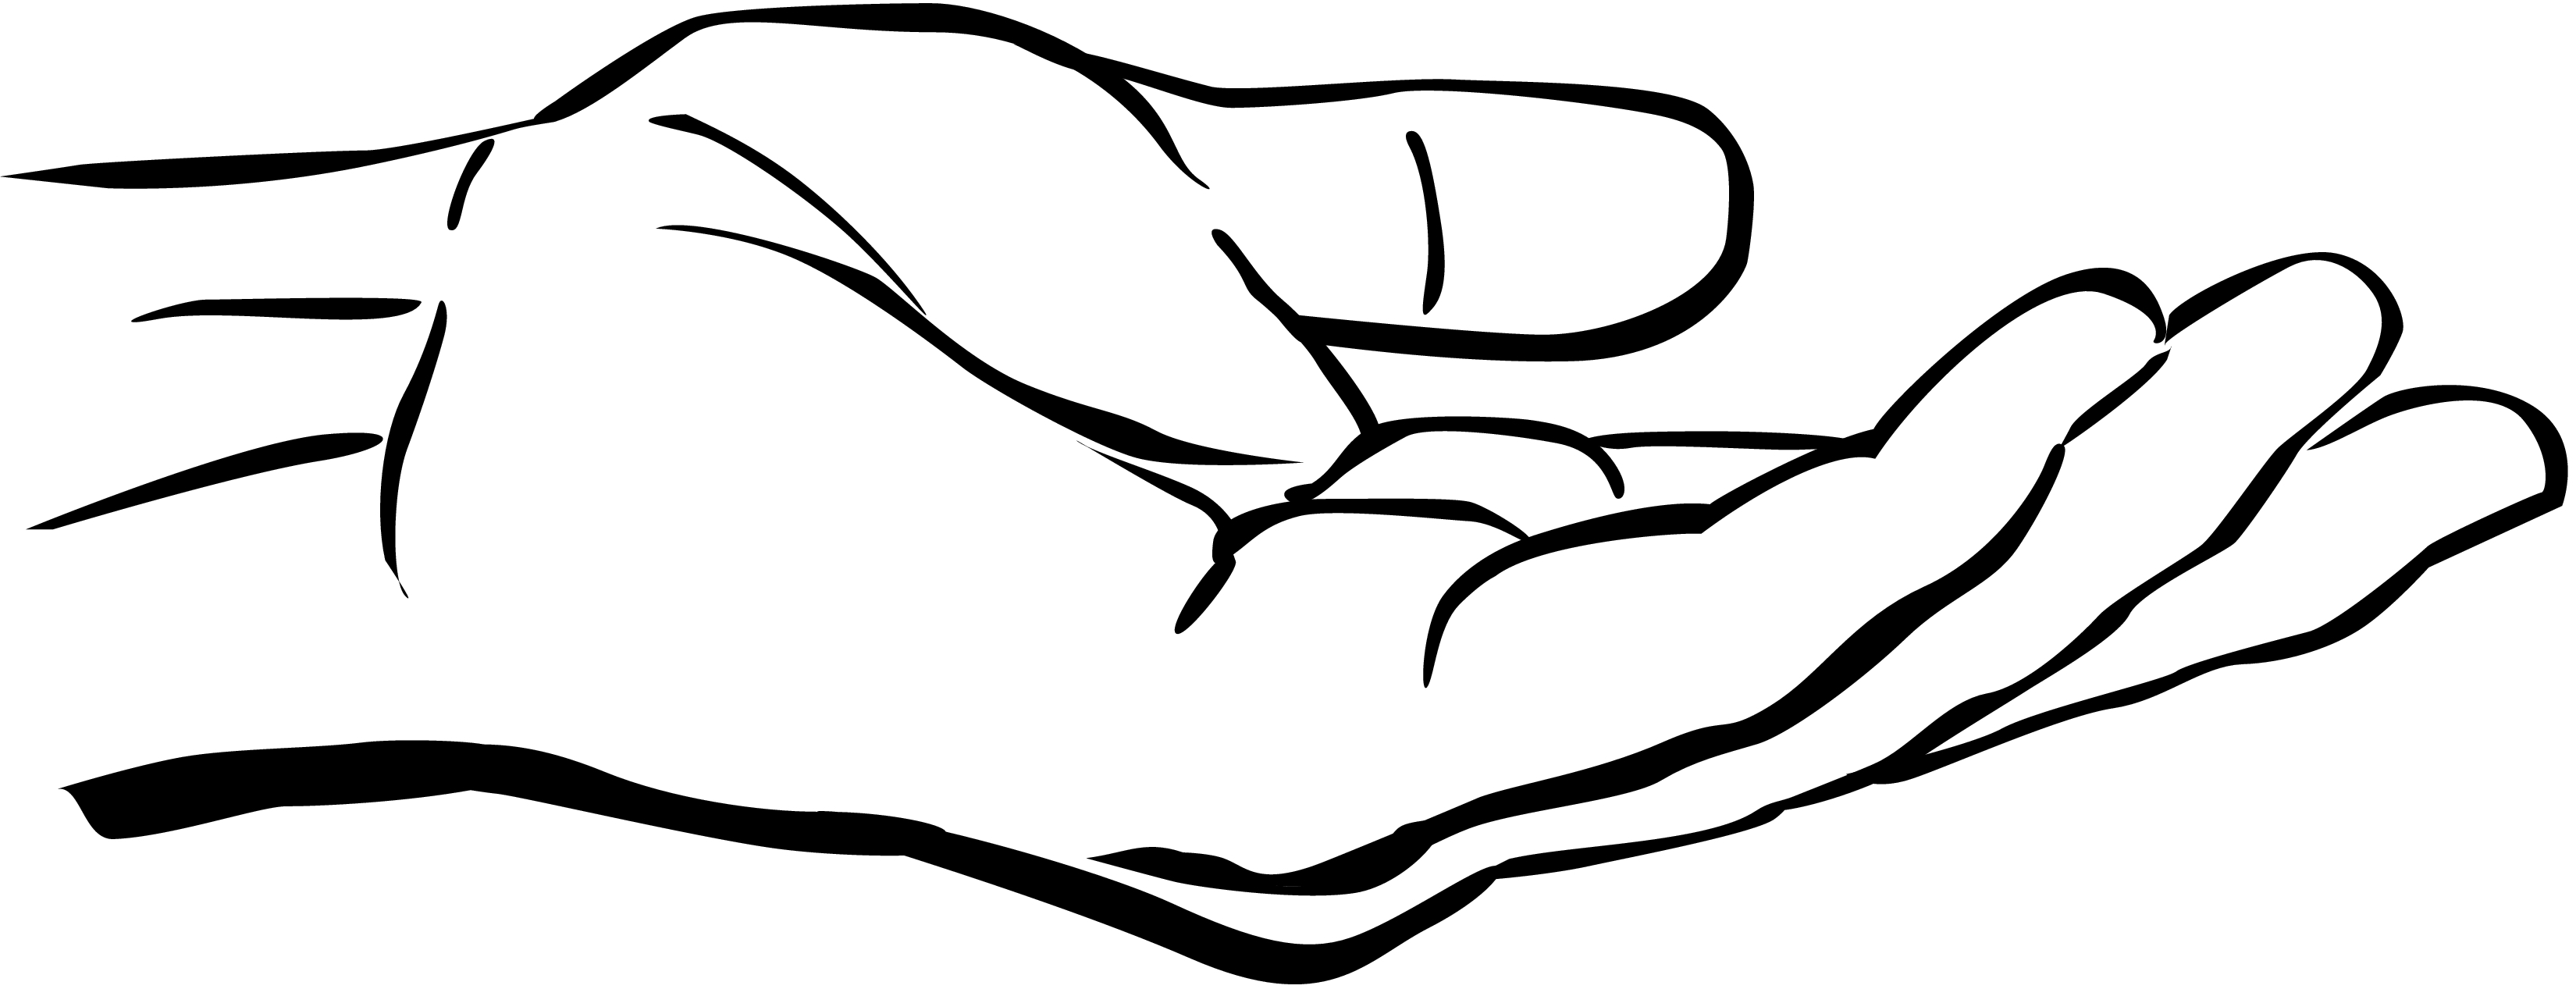 3300x1267 Clipart Hand Reaching Out